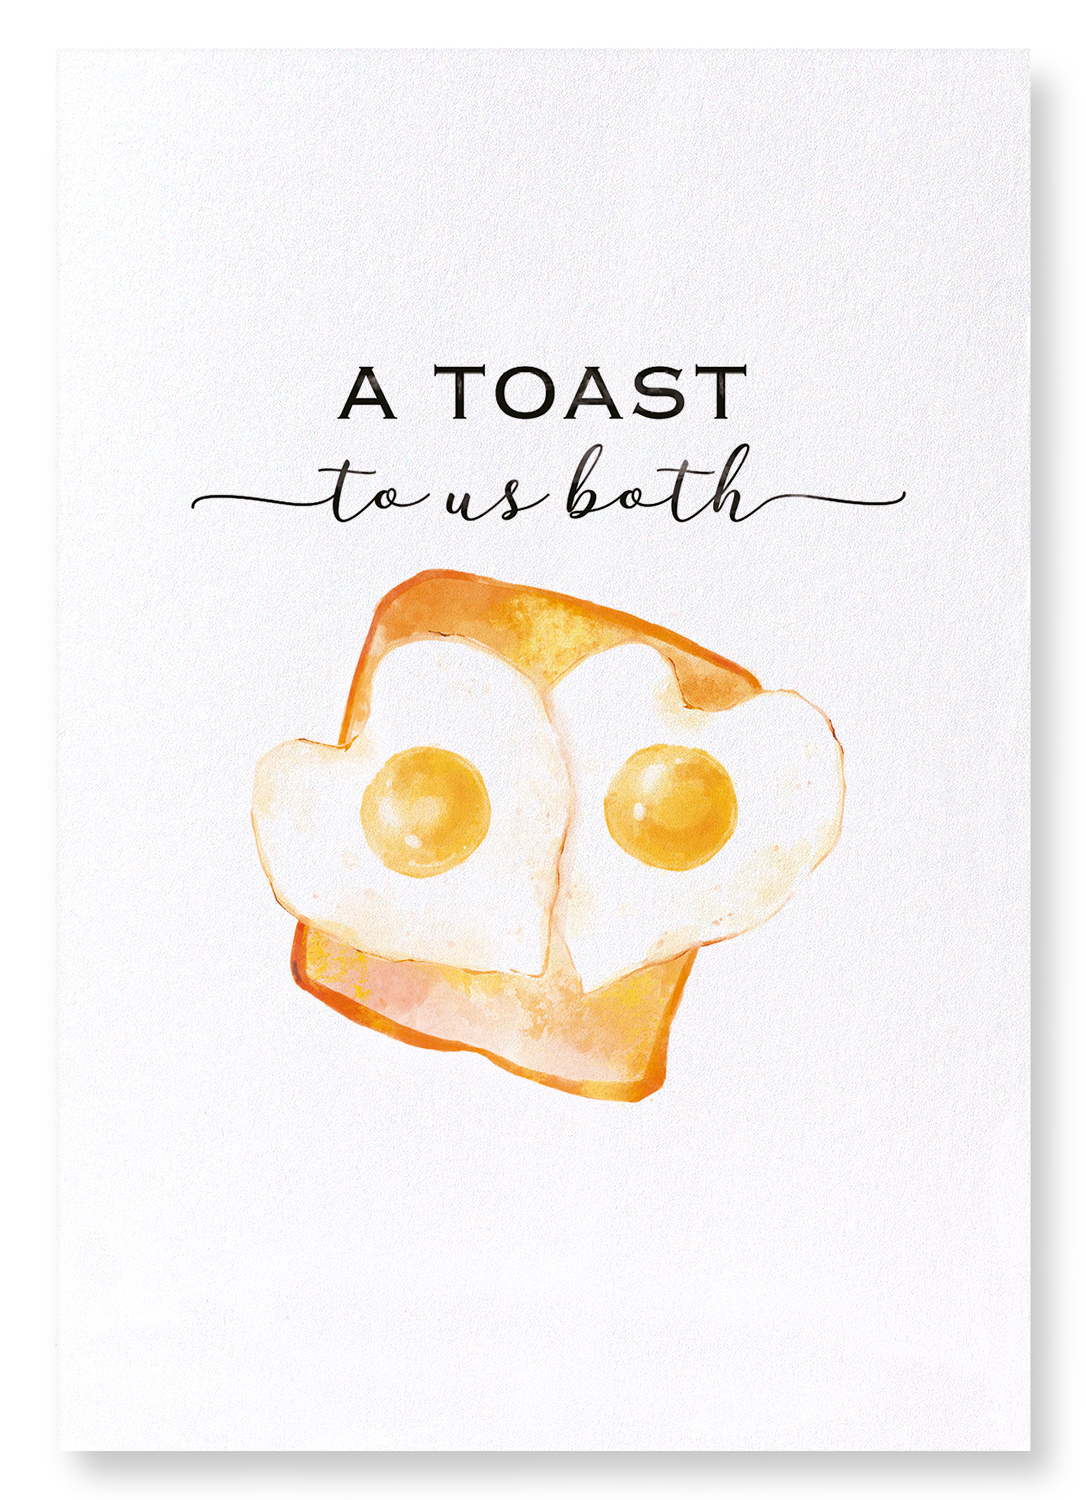 TOAST TO US BOTH: 2xPrints